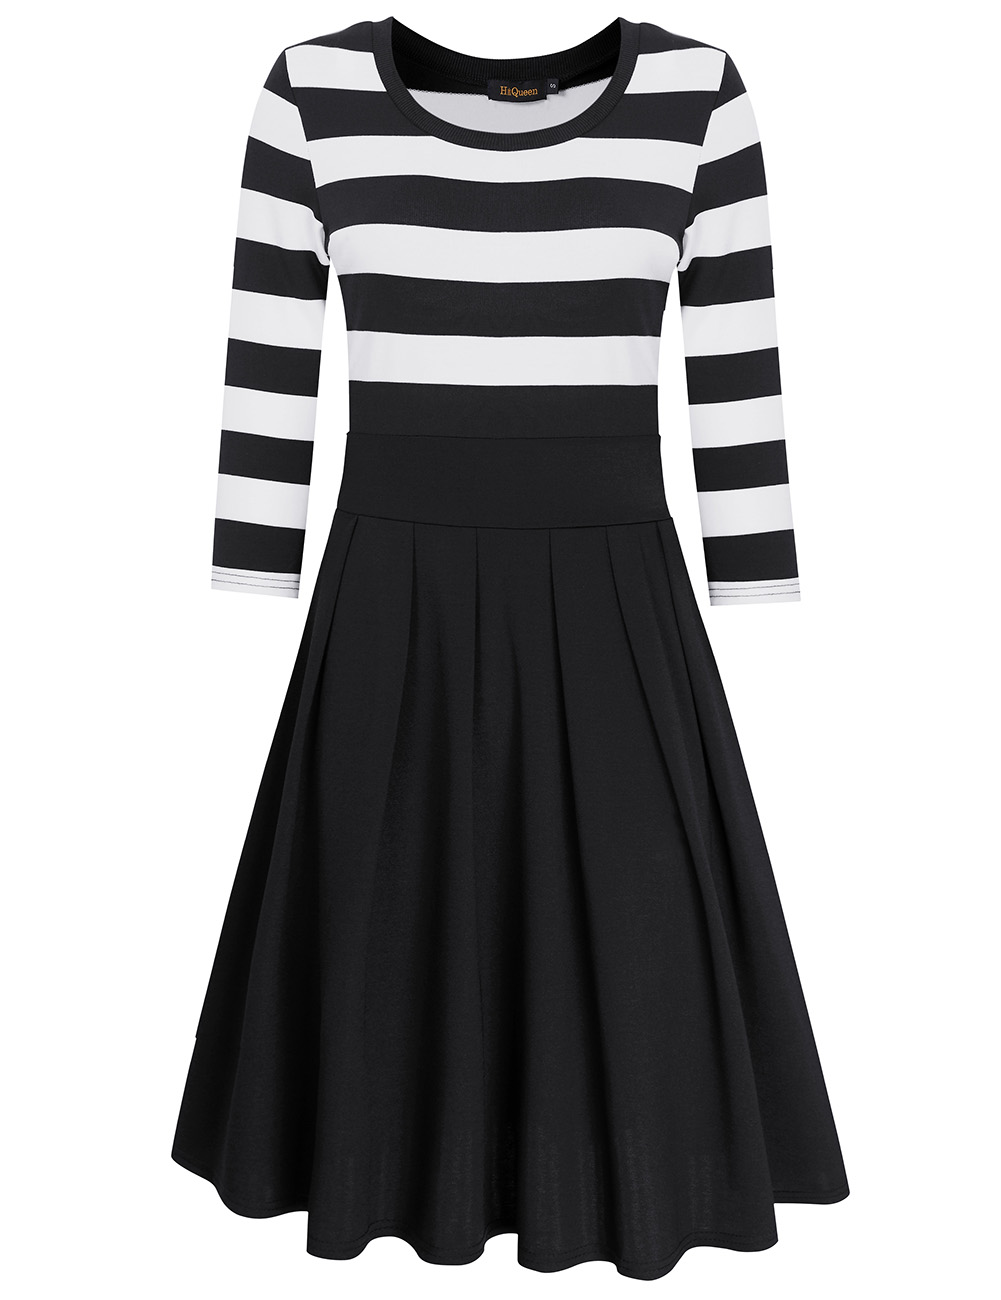 HiQueen Women Stripe Dresses - Black 2XL